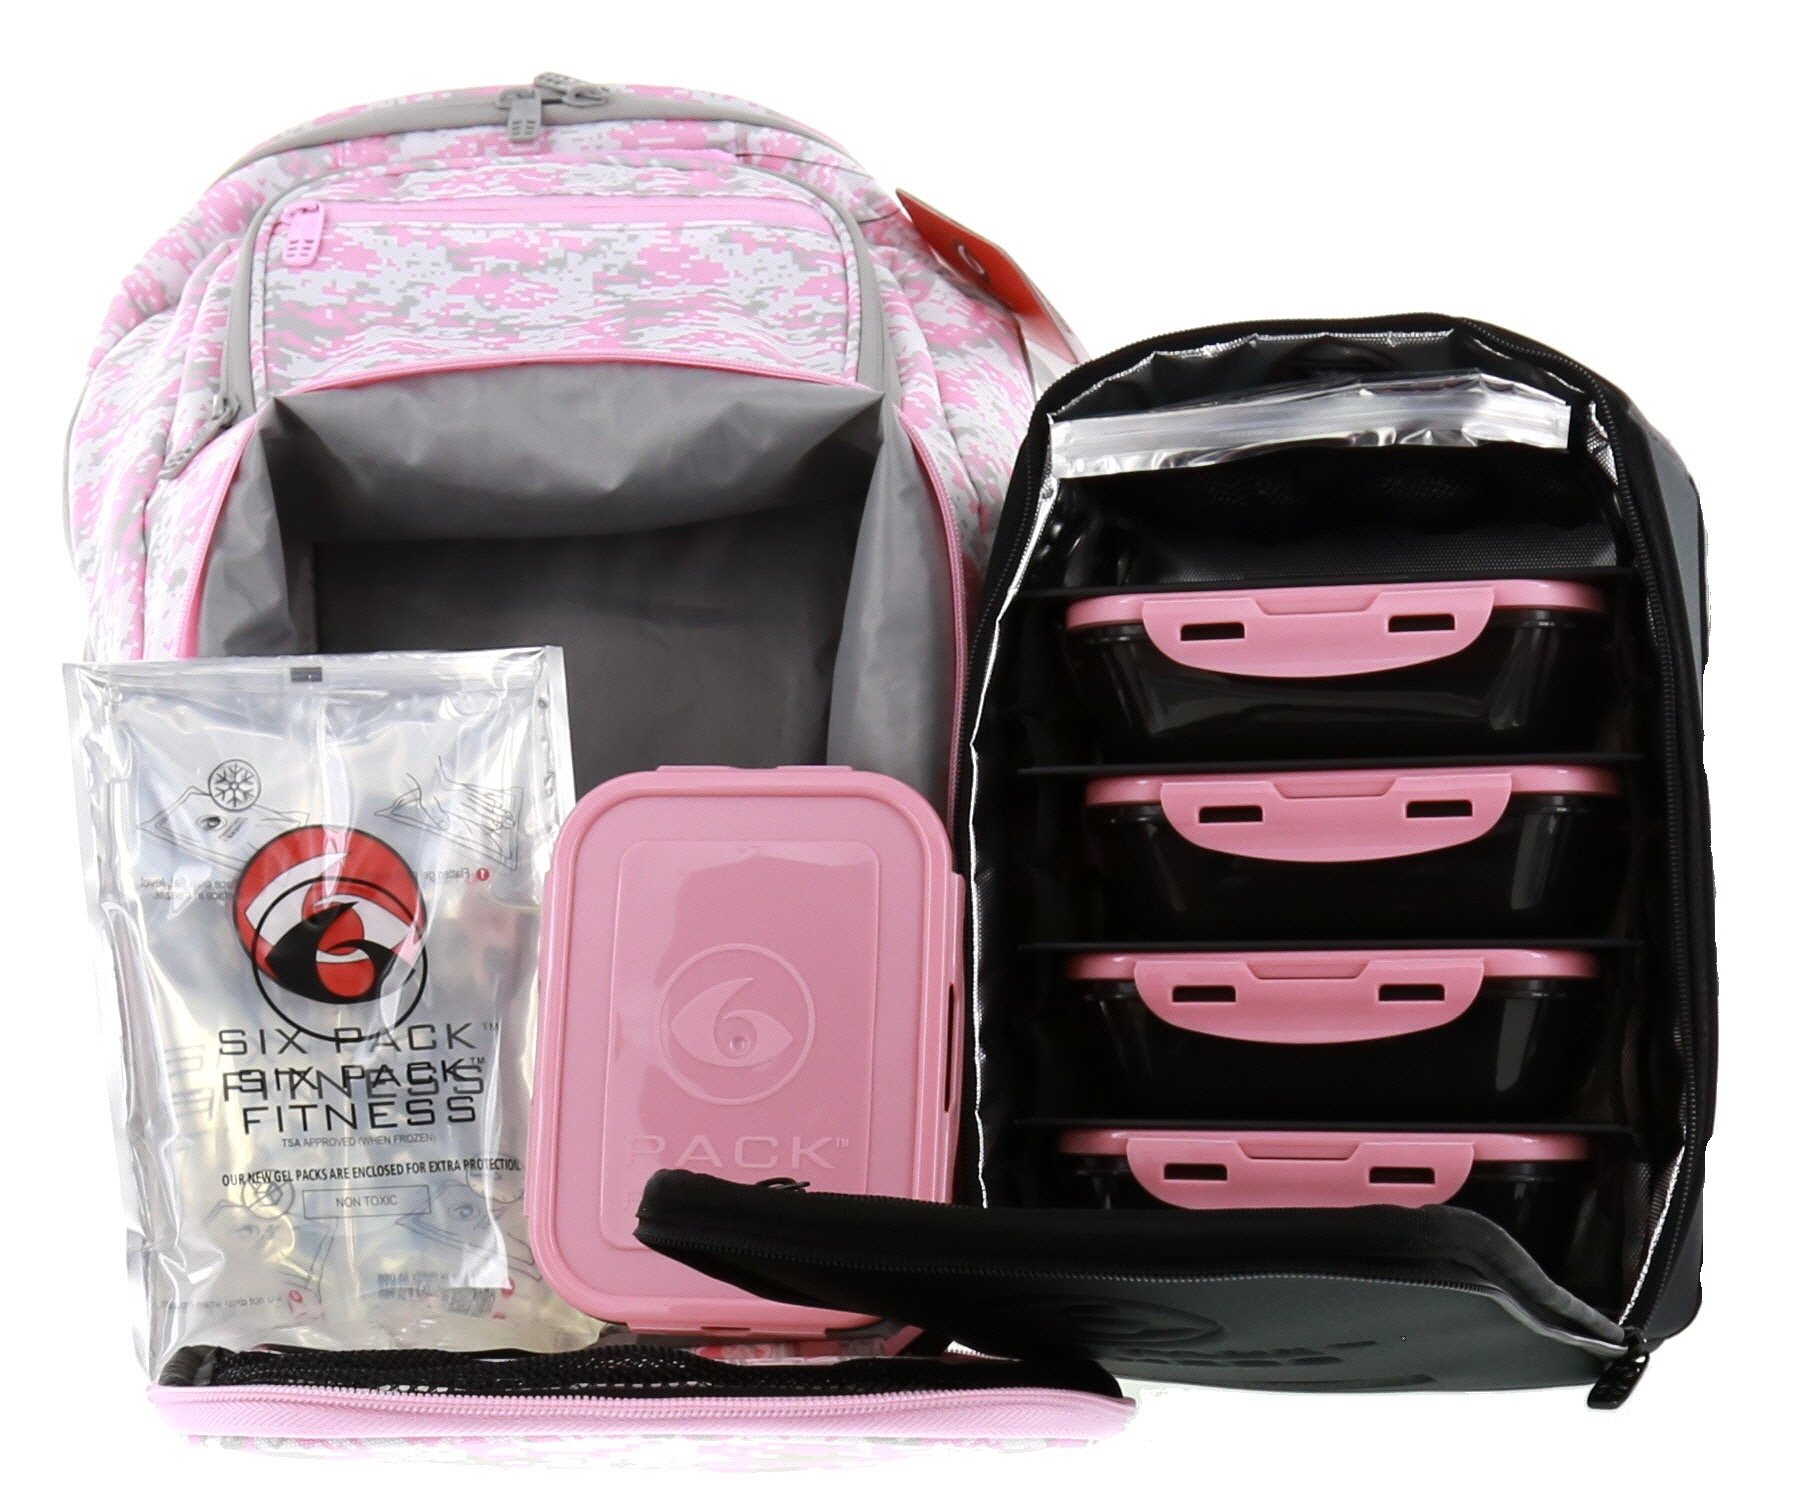 6 Pack Fitness Expedition Backpack W/ Removable Meal Management System 500 Pink & Grey Digital Camo w/ Bonus ZogoSportz Cyclone Shaker by 6 Pack Fitness (Image #3)